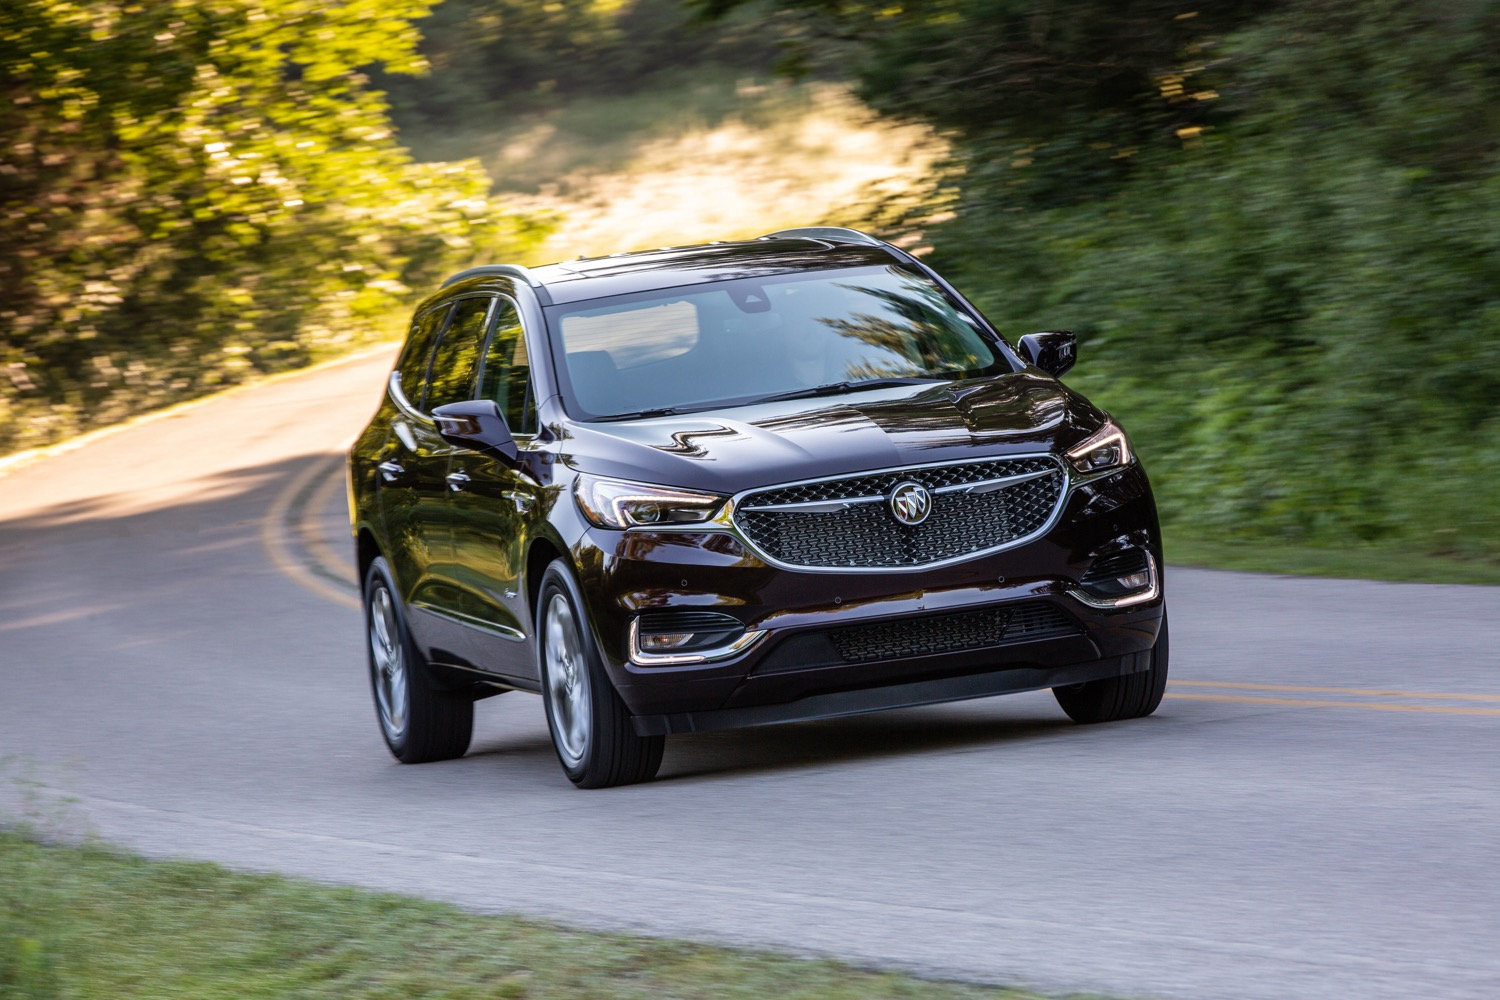 Gm Needs To Revive The Buick Avenir Sub-Brand | Gm Authority New 2022 Buick Enclave Manual, Maintenance Schedule, Mileage